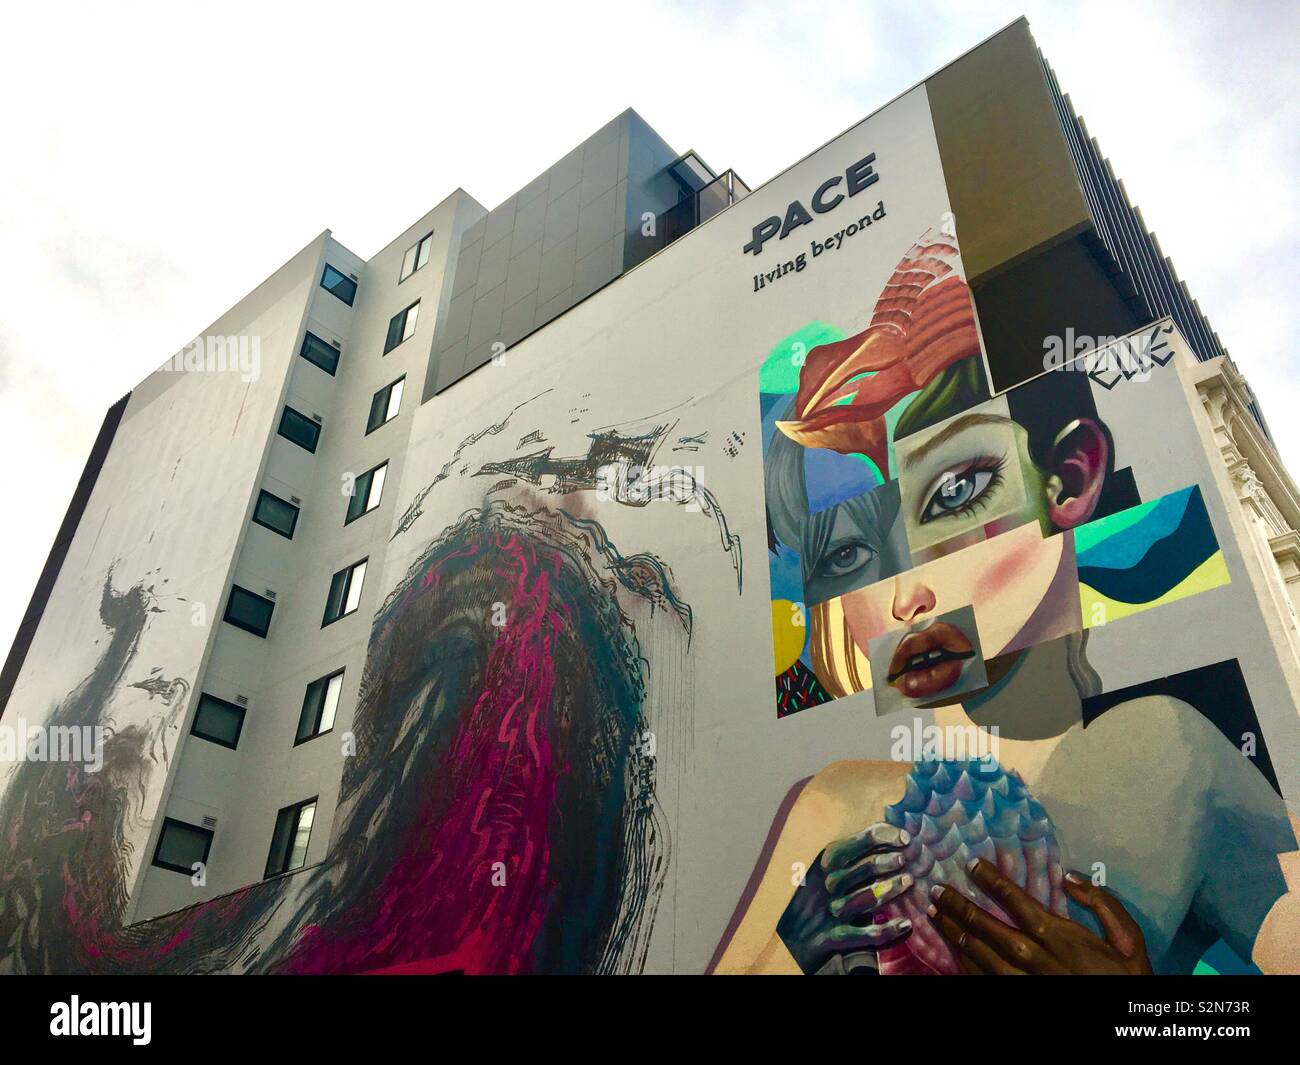 High rise apartments with street art mural Stock Photo